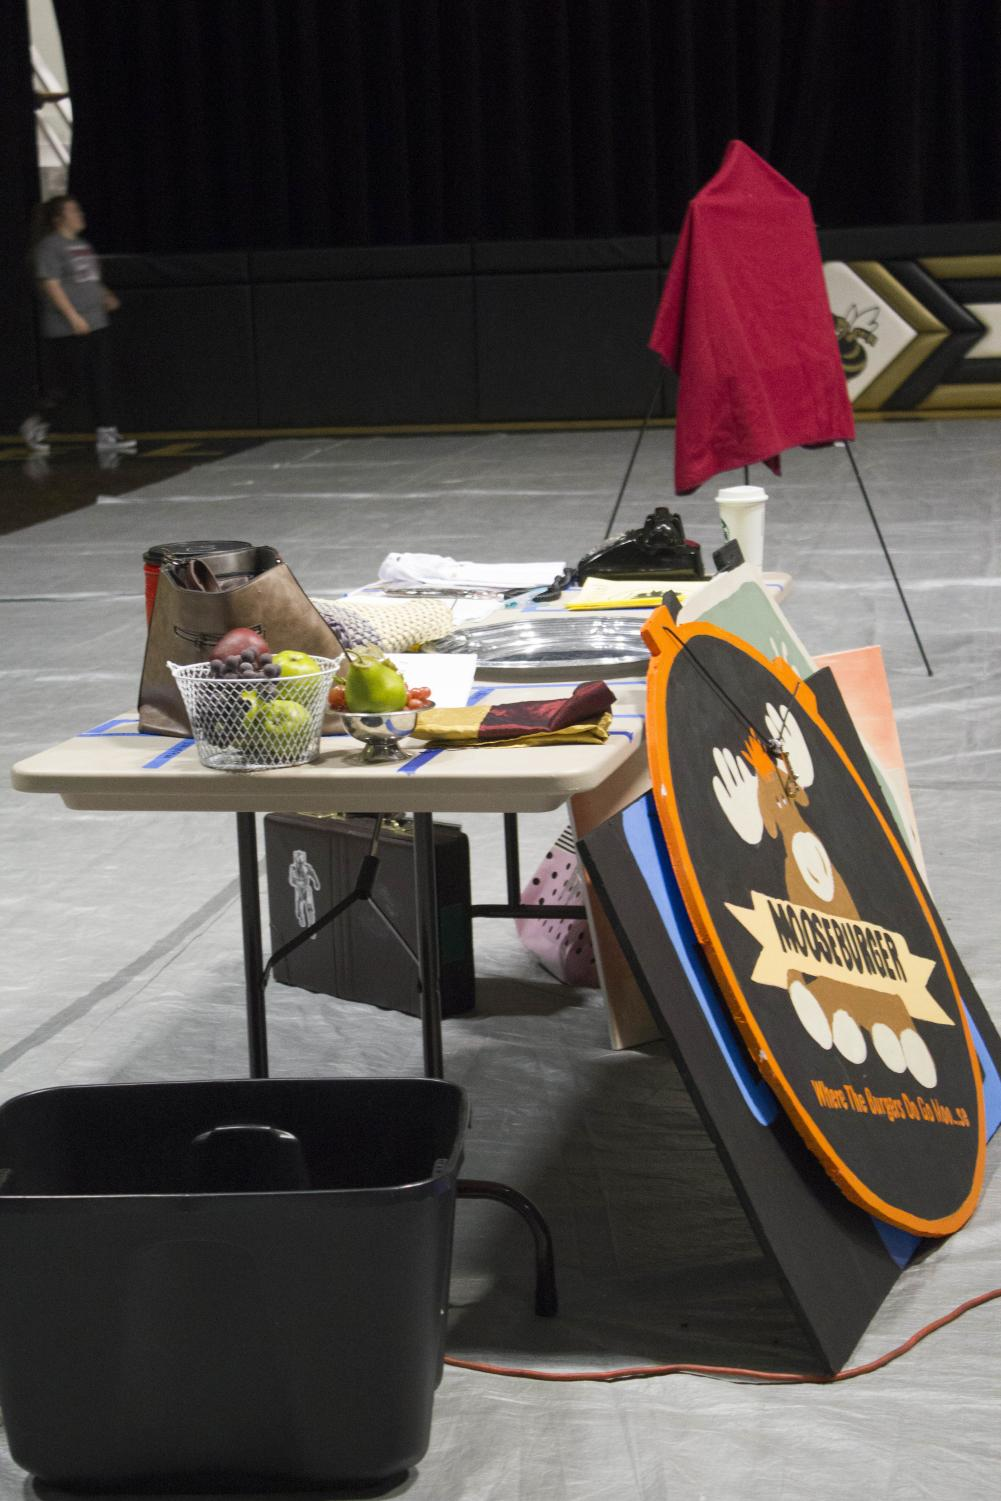 Back+stage+props+are+pre+set+in+order+to+ensure+fast+transitions+from+one+scene+to+the+next.+